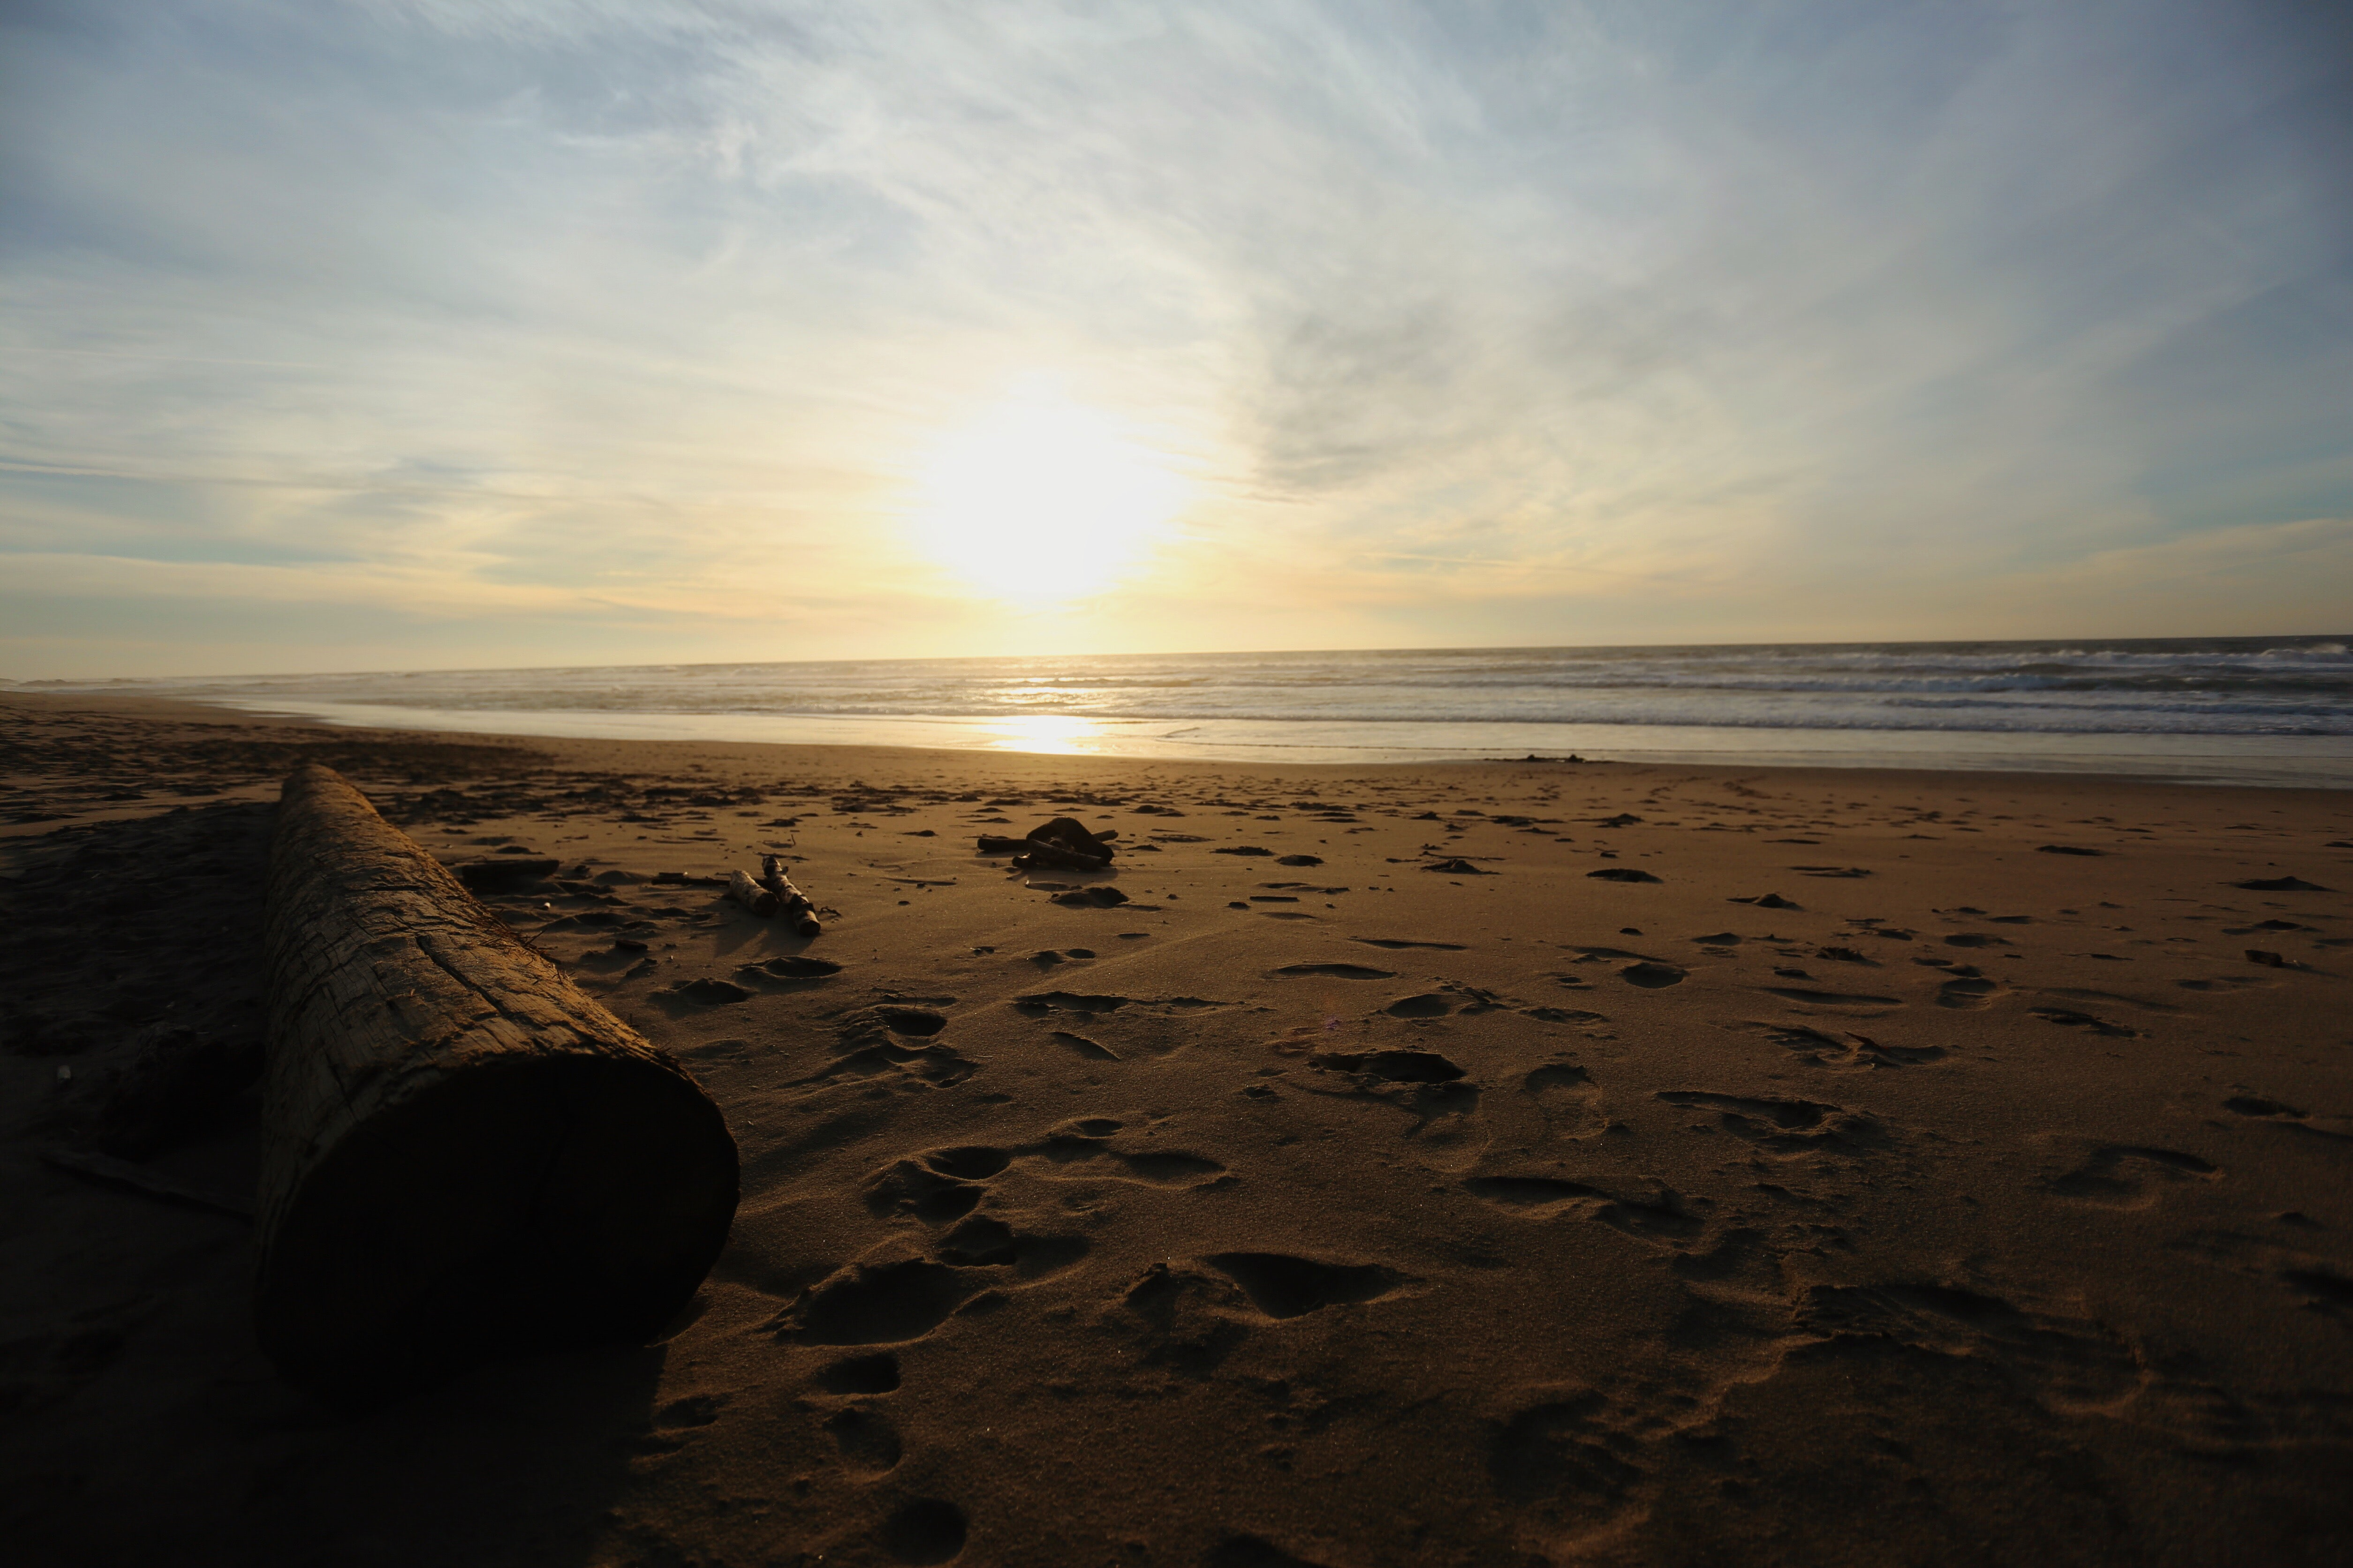 Sunset from the sandy beach with footprints